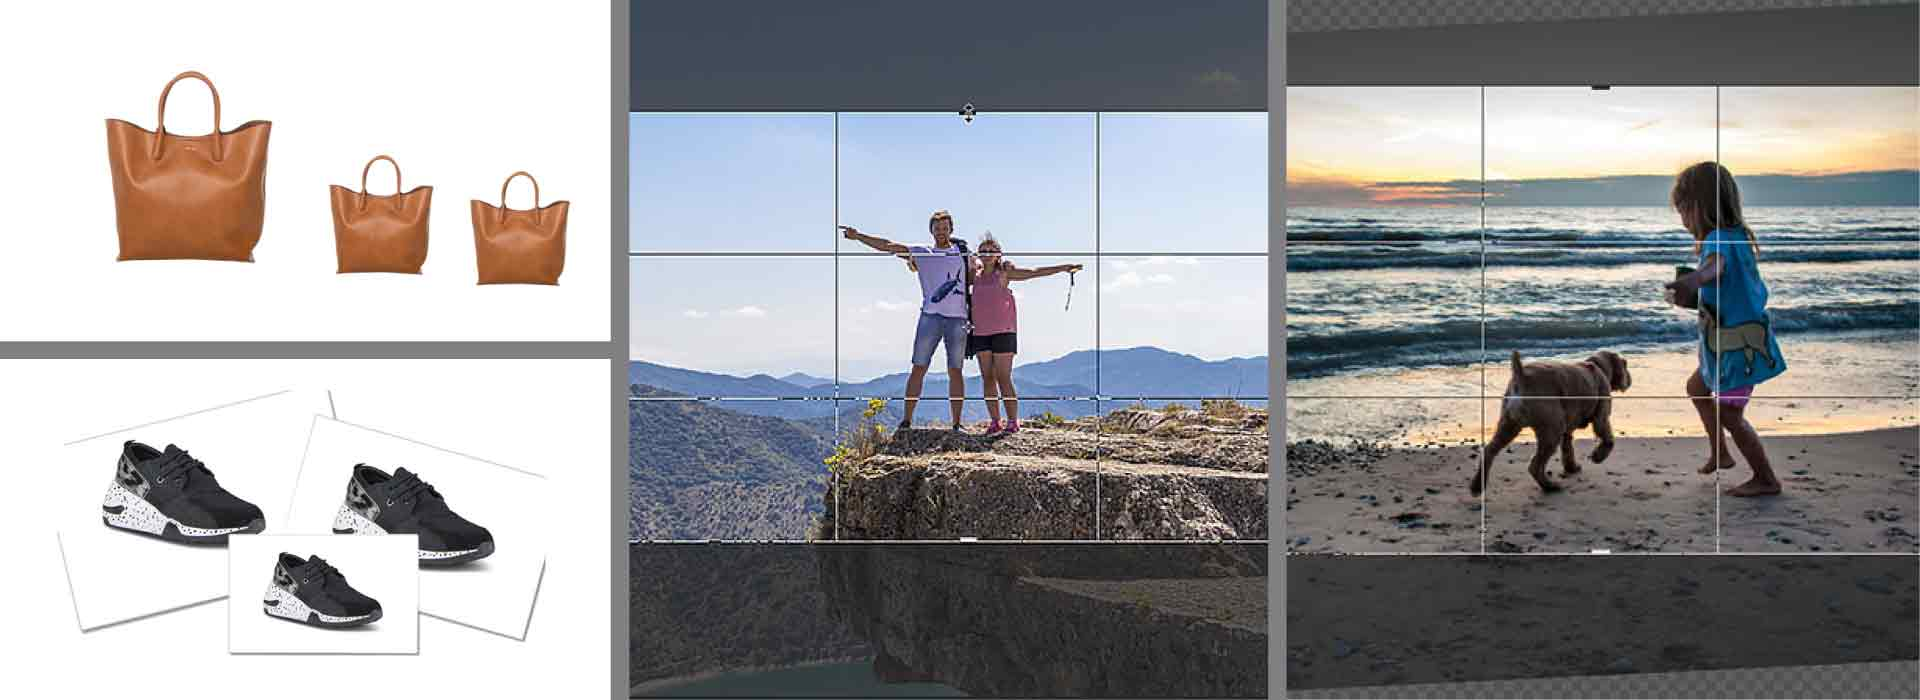 Photo resizing and cropping services